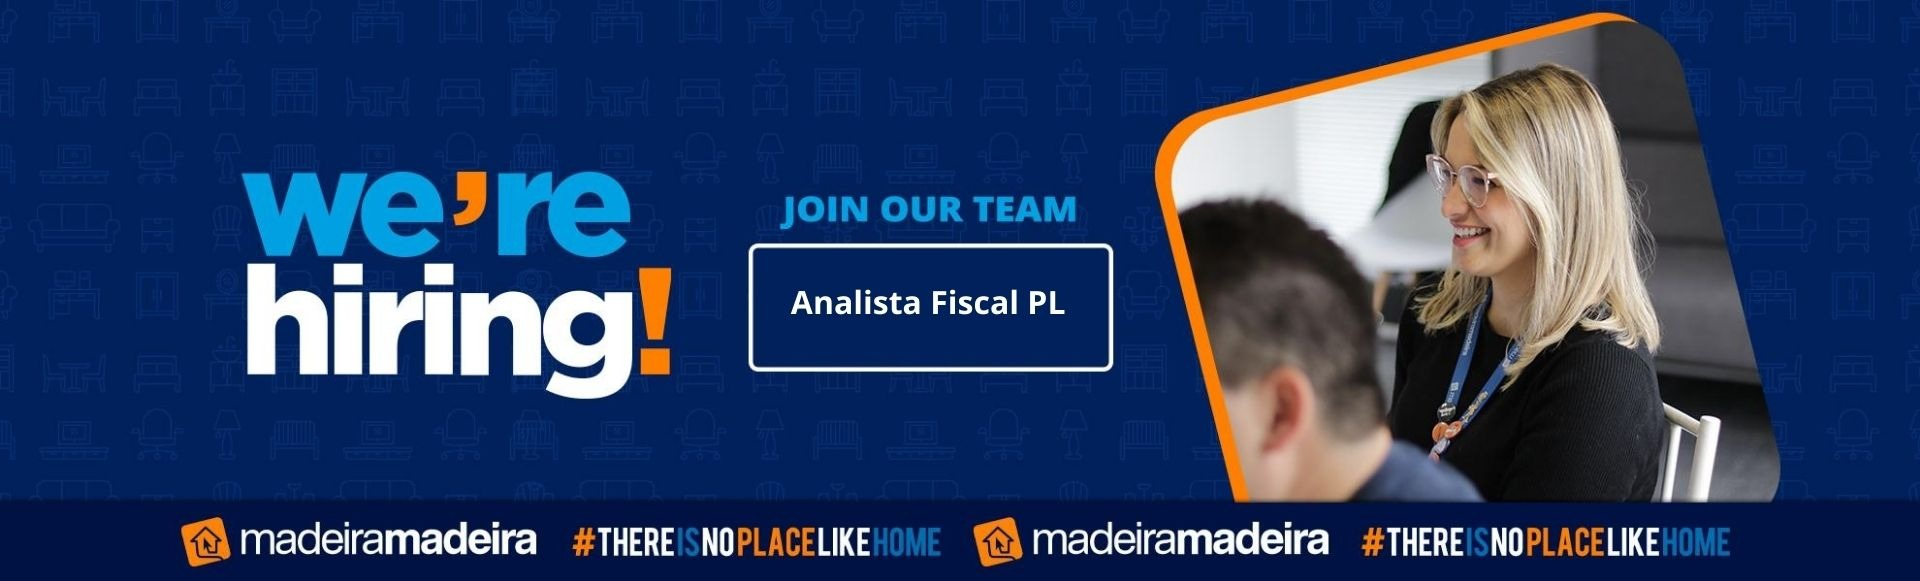 Analista Fiscal PL